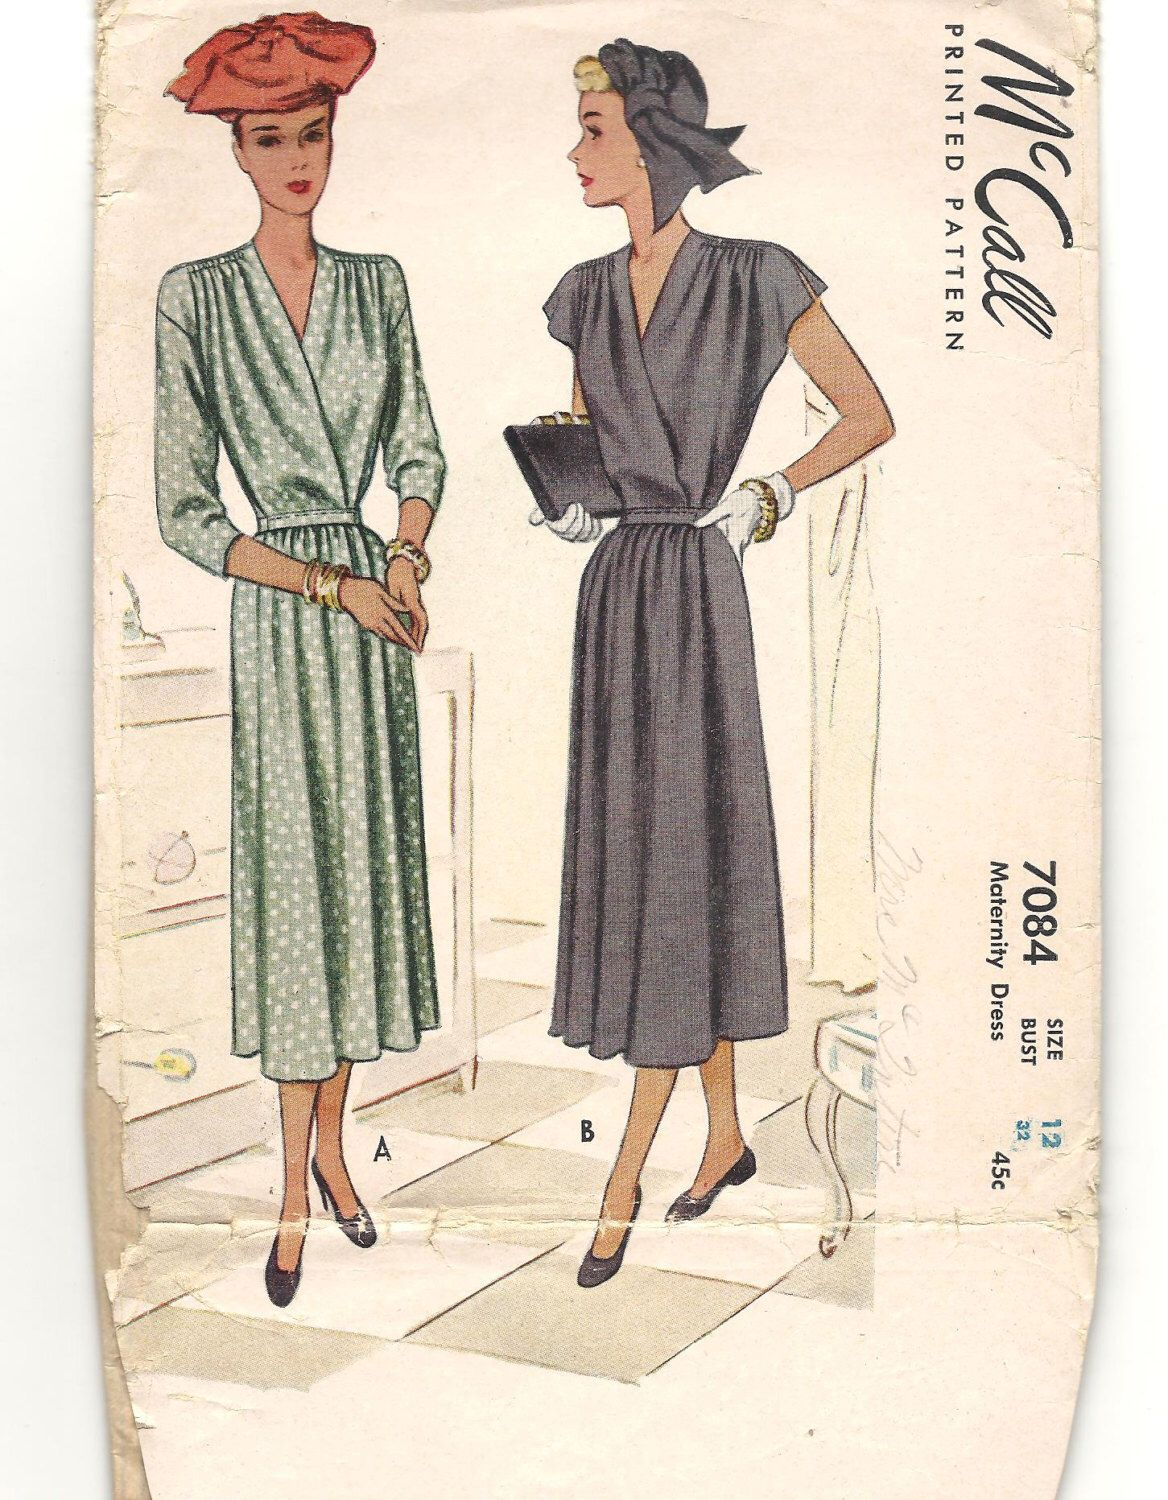 1940s dress vintage sewing pattern wrap front with tie belt v dress vintage sewing pattern wrap front with tie belt v neckline maternity dress misses size 12 bust 32 mccall printed pattern ombrellifo Images